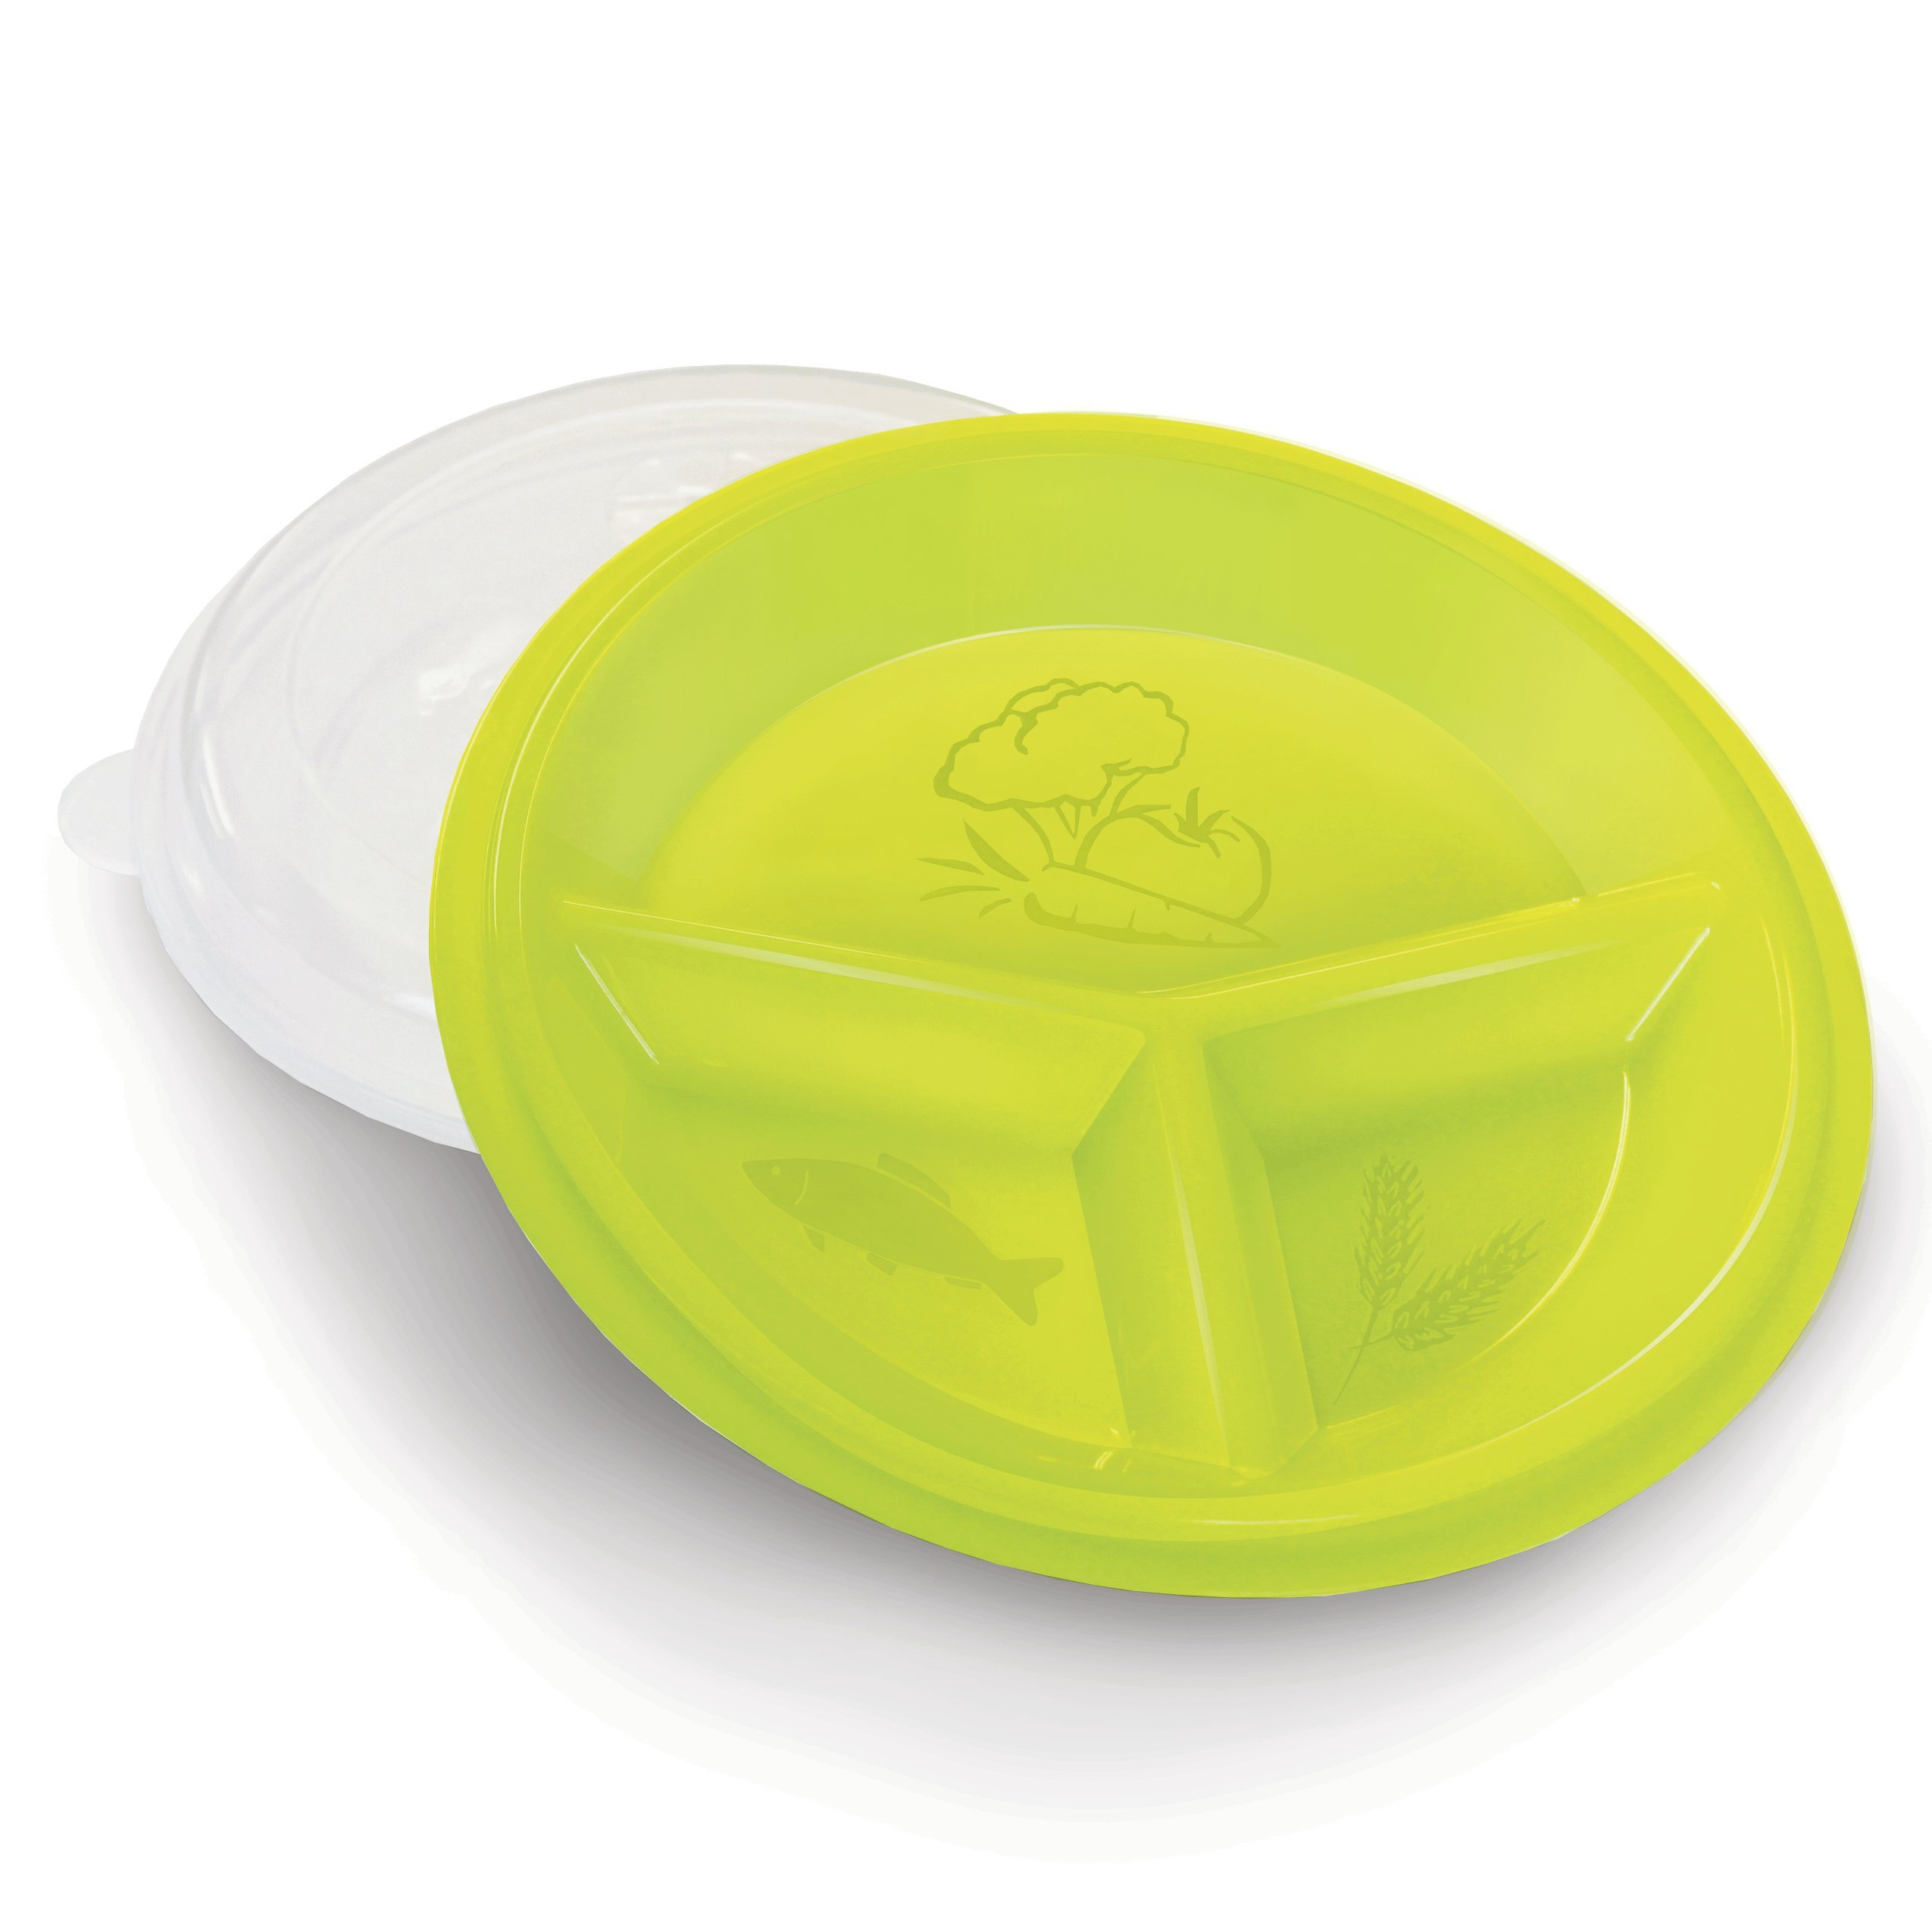 Rehabilitation Advantage Rehabilitation Advantage 3 Compartment Portion Plate - Healthy Eating & Portion Control, Set of 2, 0.55 Pound